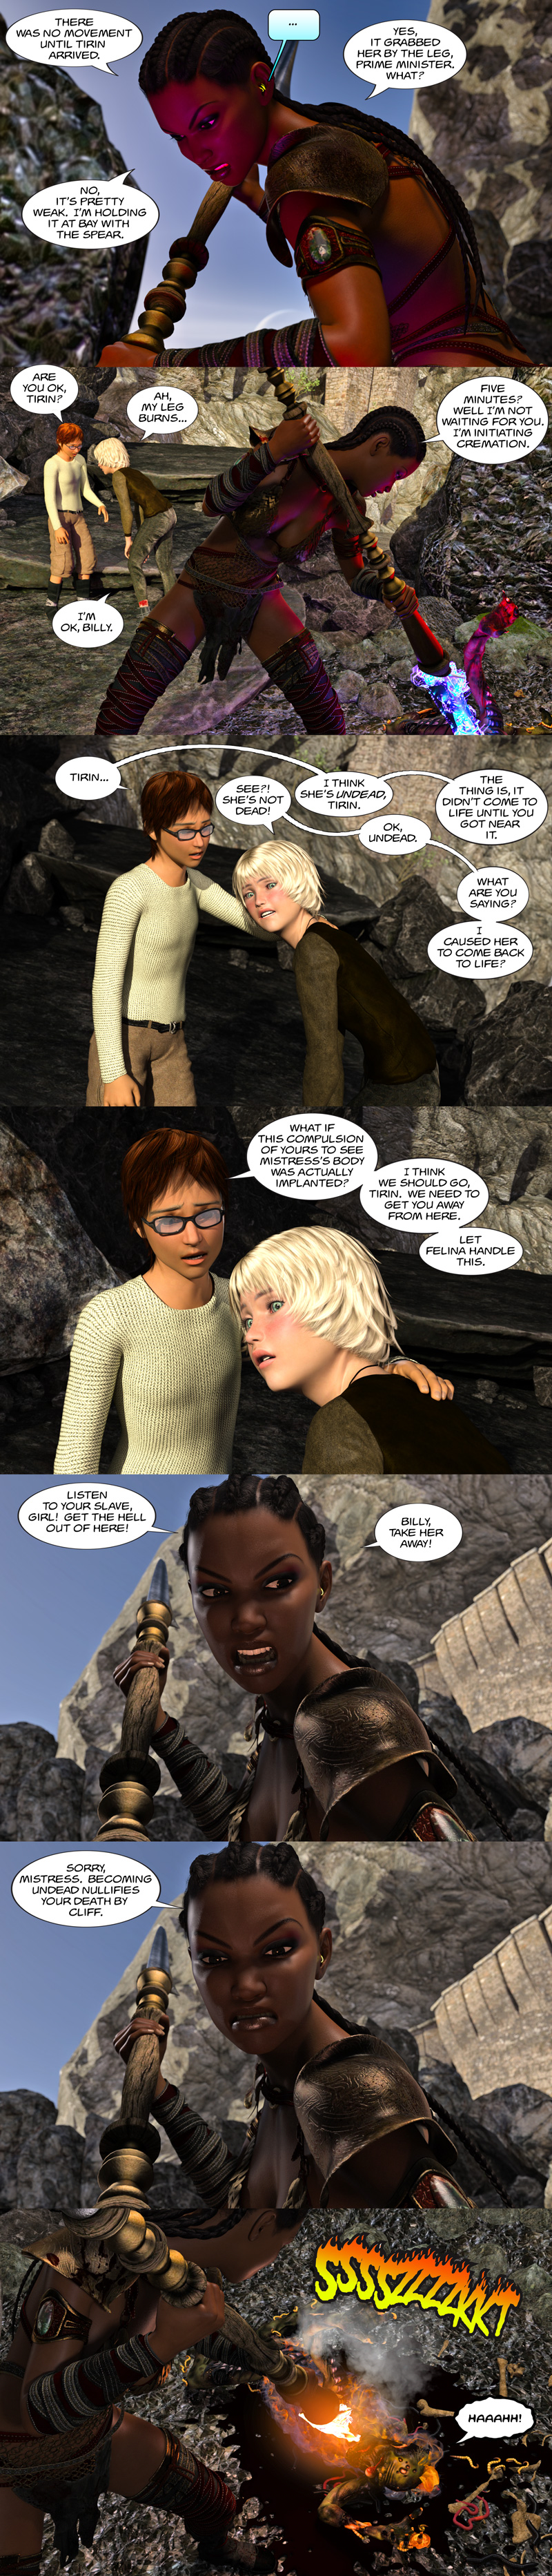 Chapter 17, page 19 – Let the cremation begin